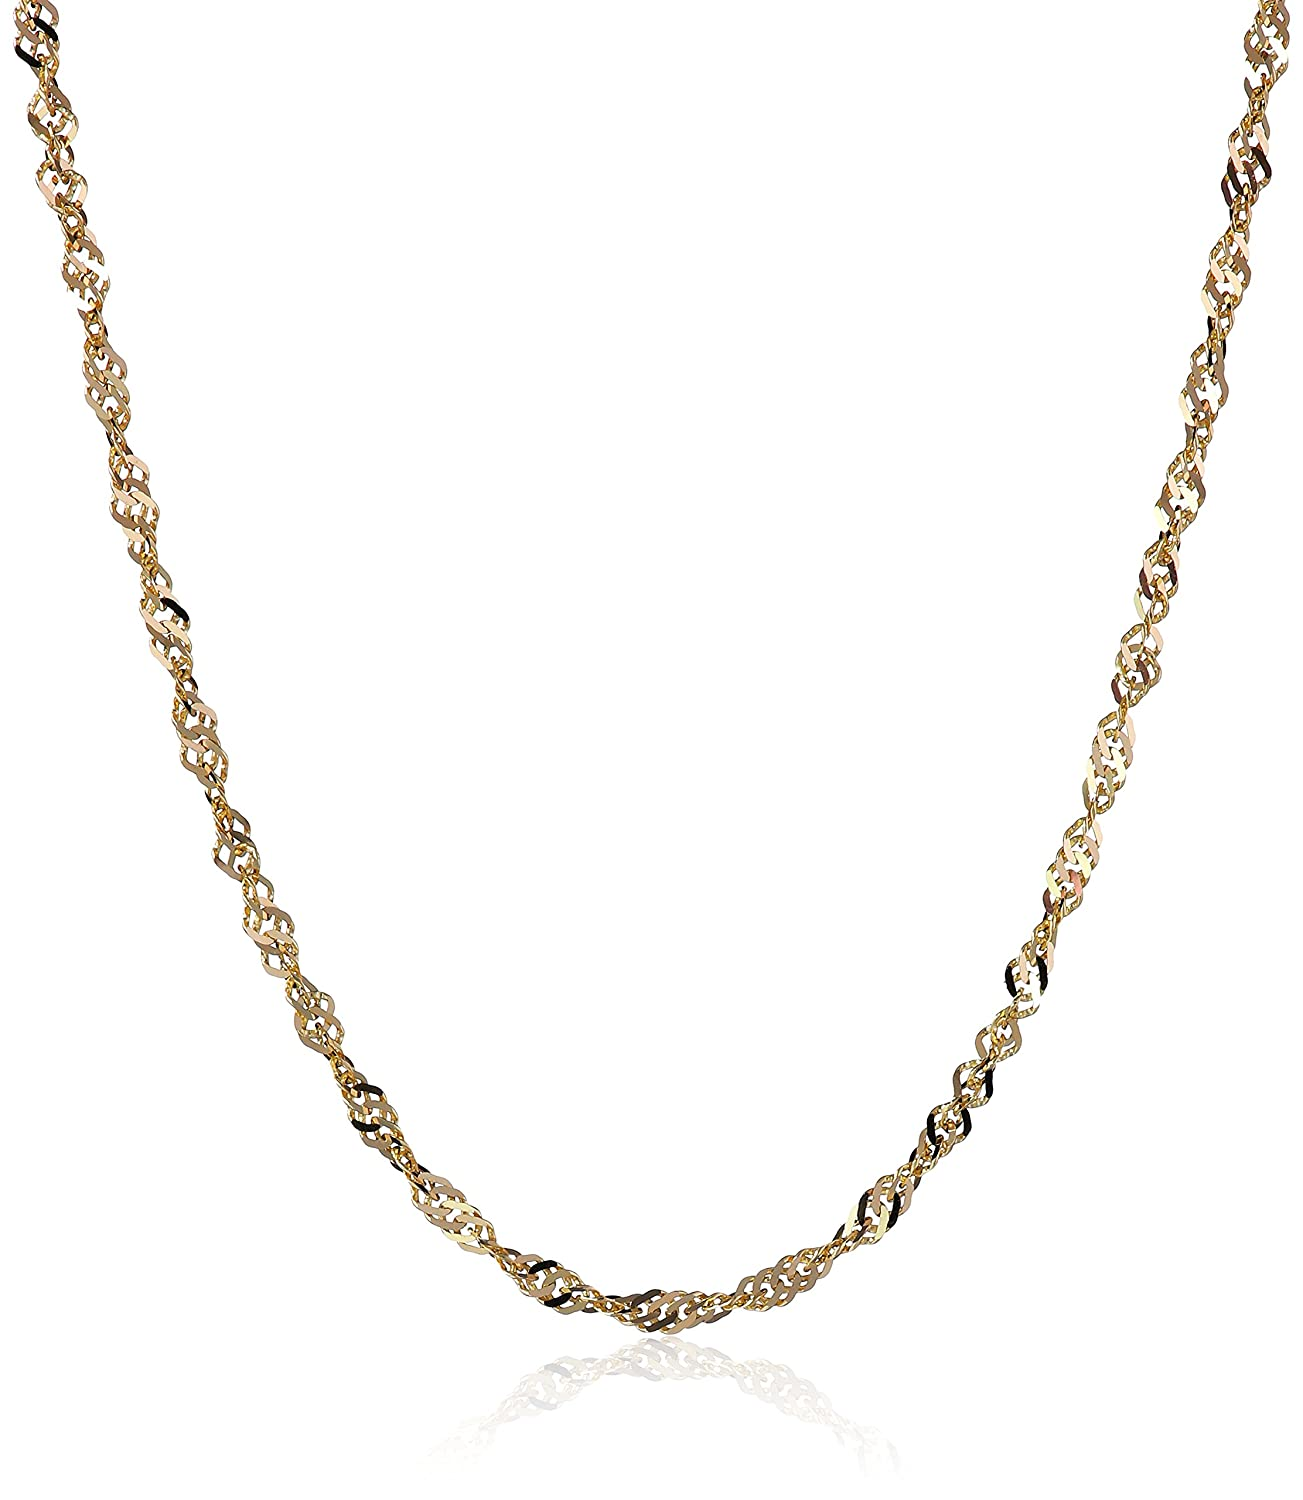 14k Gold Singapore Chain Necklace (1.35mm), 18 18 Amazon Collection 075.025W.18